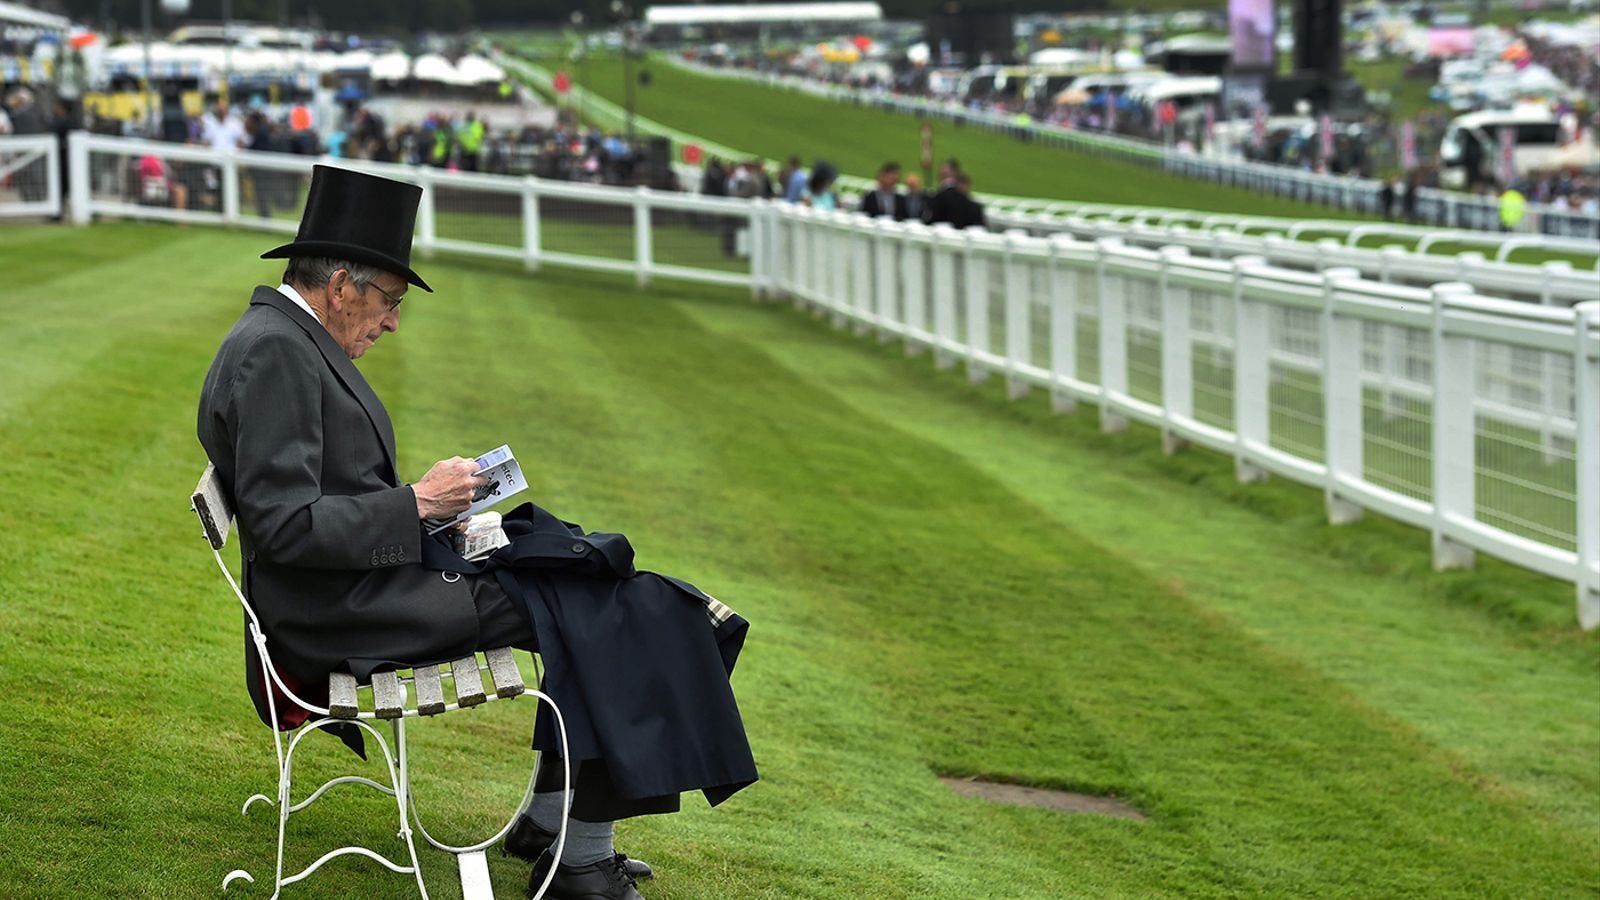 Second day of the Epsom Derby Festival in Surrey, south of England